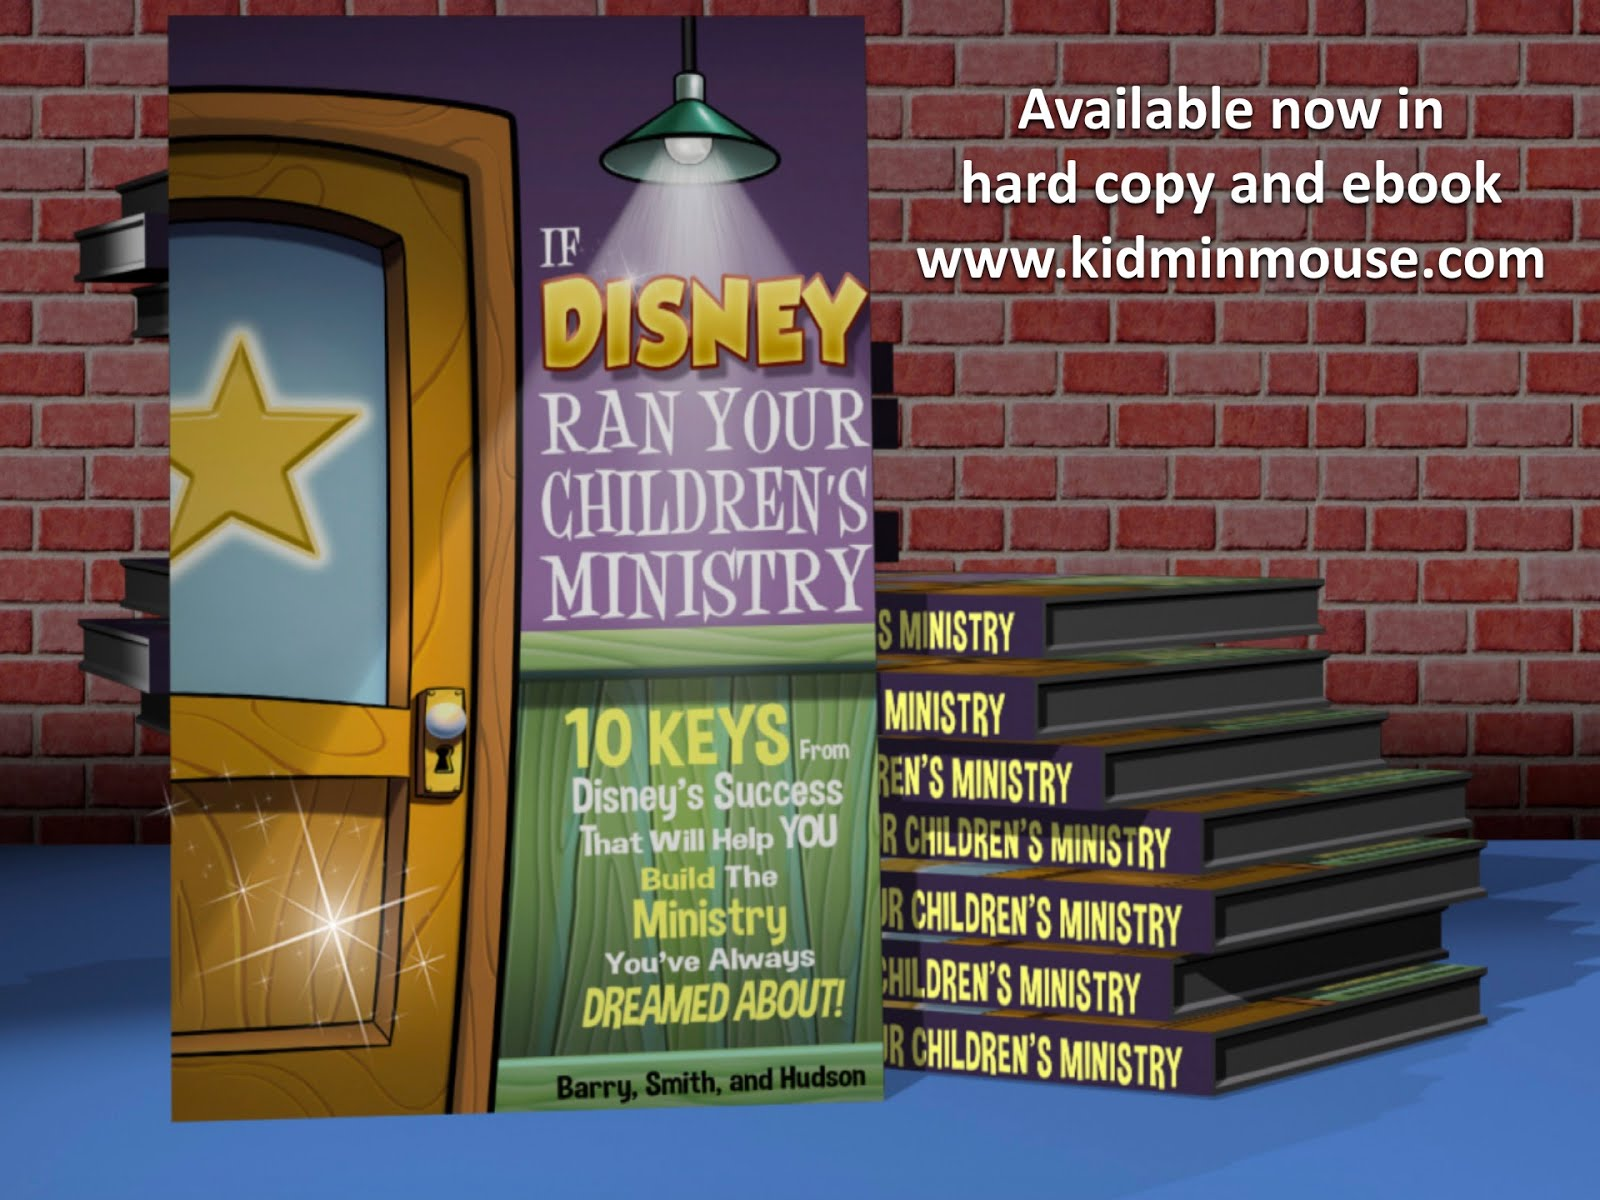 If Disney Ran Your Children's Ministry Book